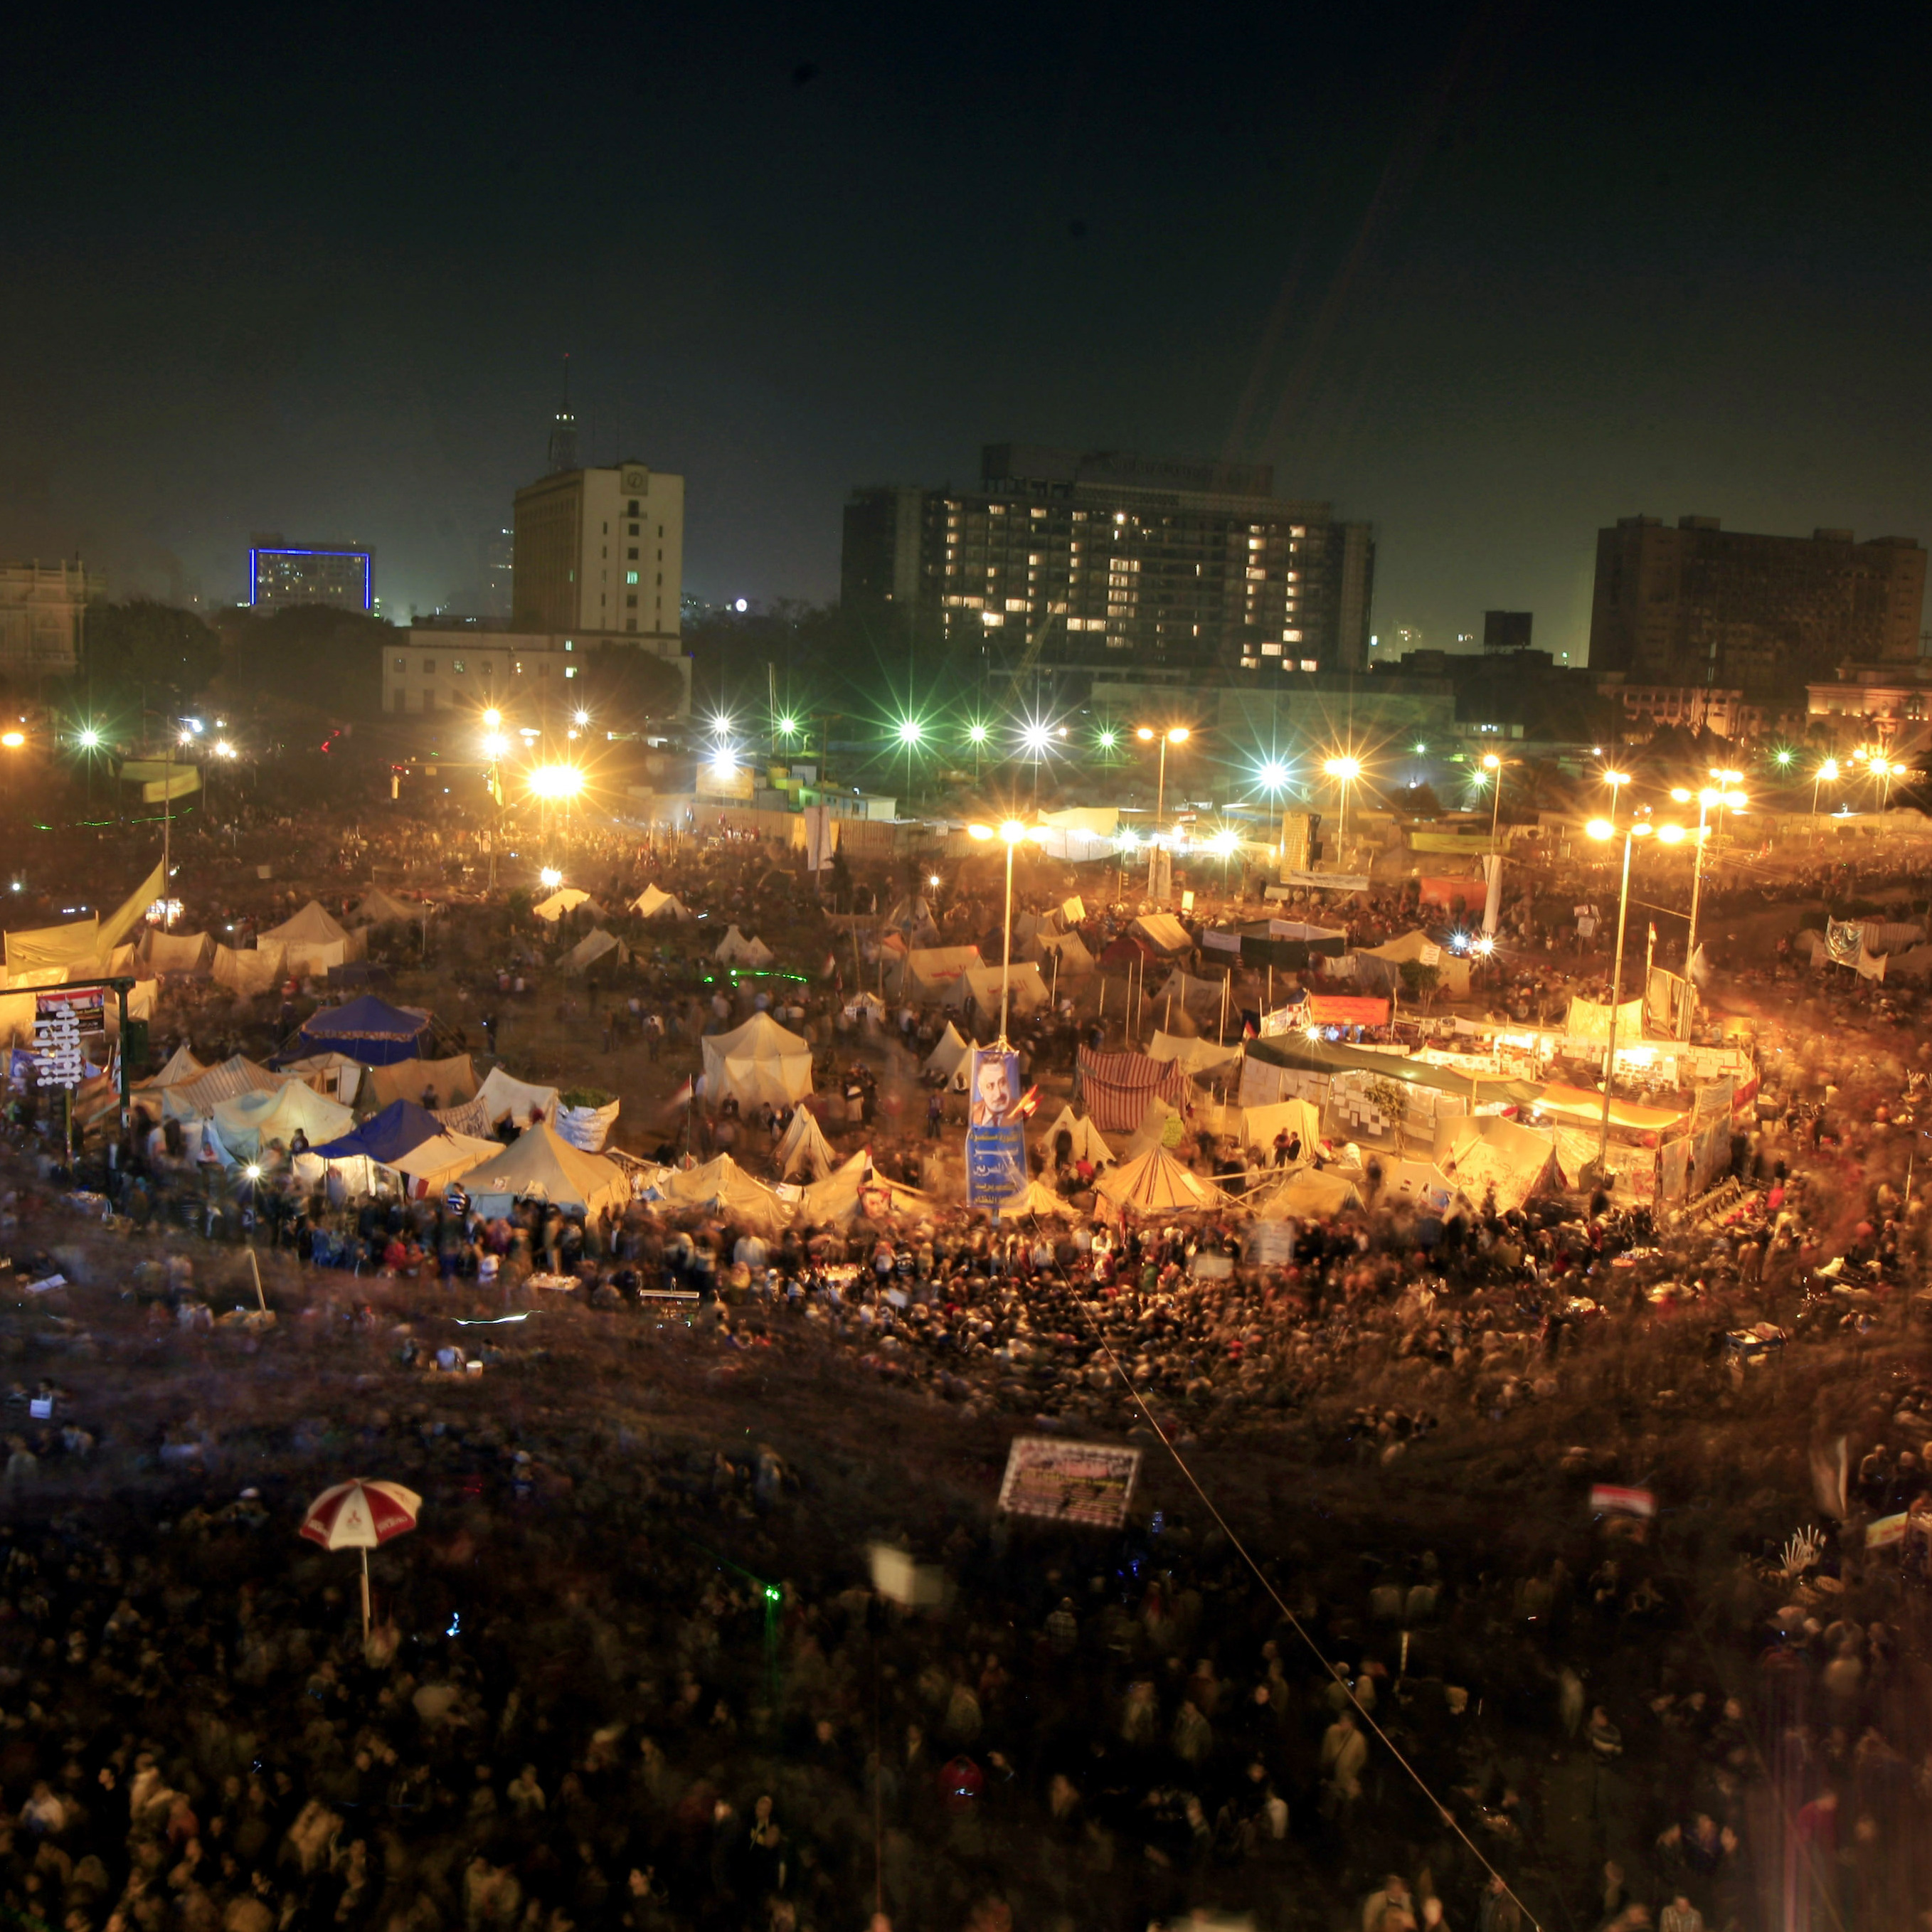 Thousands of Egyptian protesters gather in Cairo's Tahrir Square on Friday, marking two years since the start of the country's revolution.